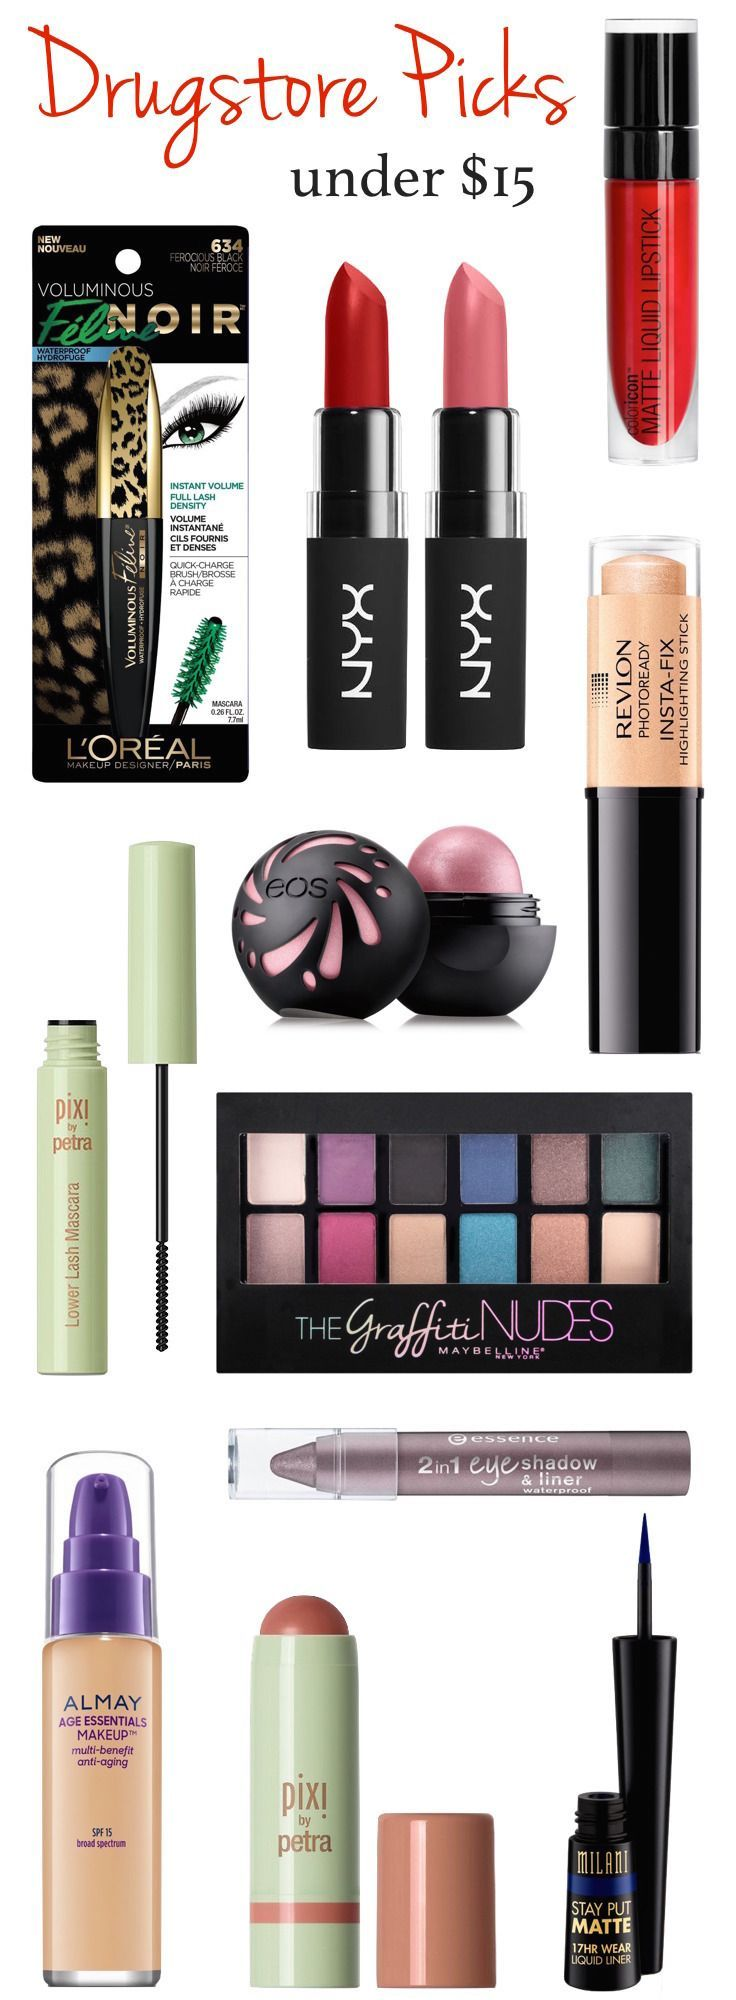 New drugstore makeup for fall 2016! From a bold matte liquid lipstick (under $5!!) to a mascara especially created for lower lashes, here are 12 new drugstore makeup products coming your way this fall!